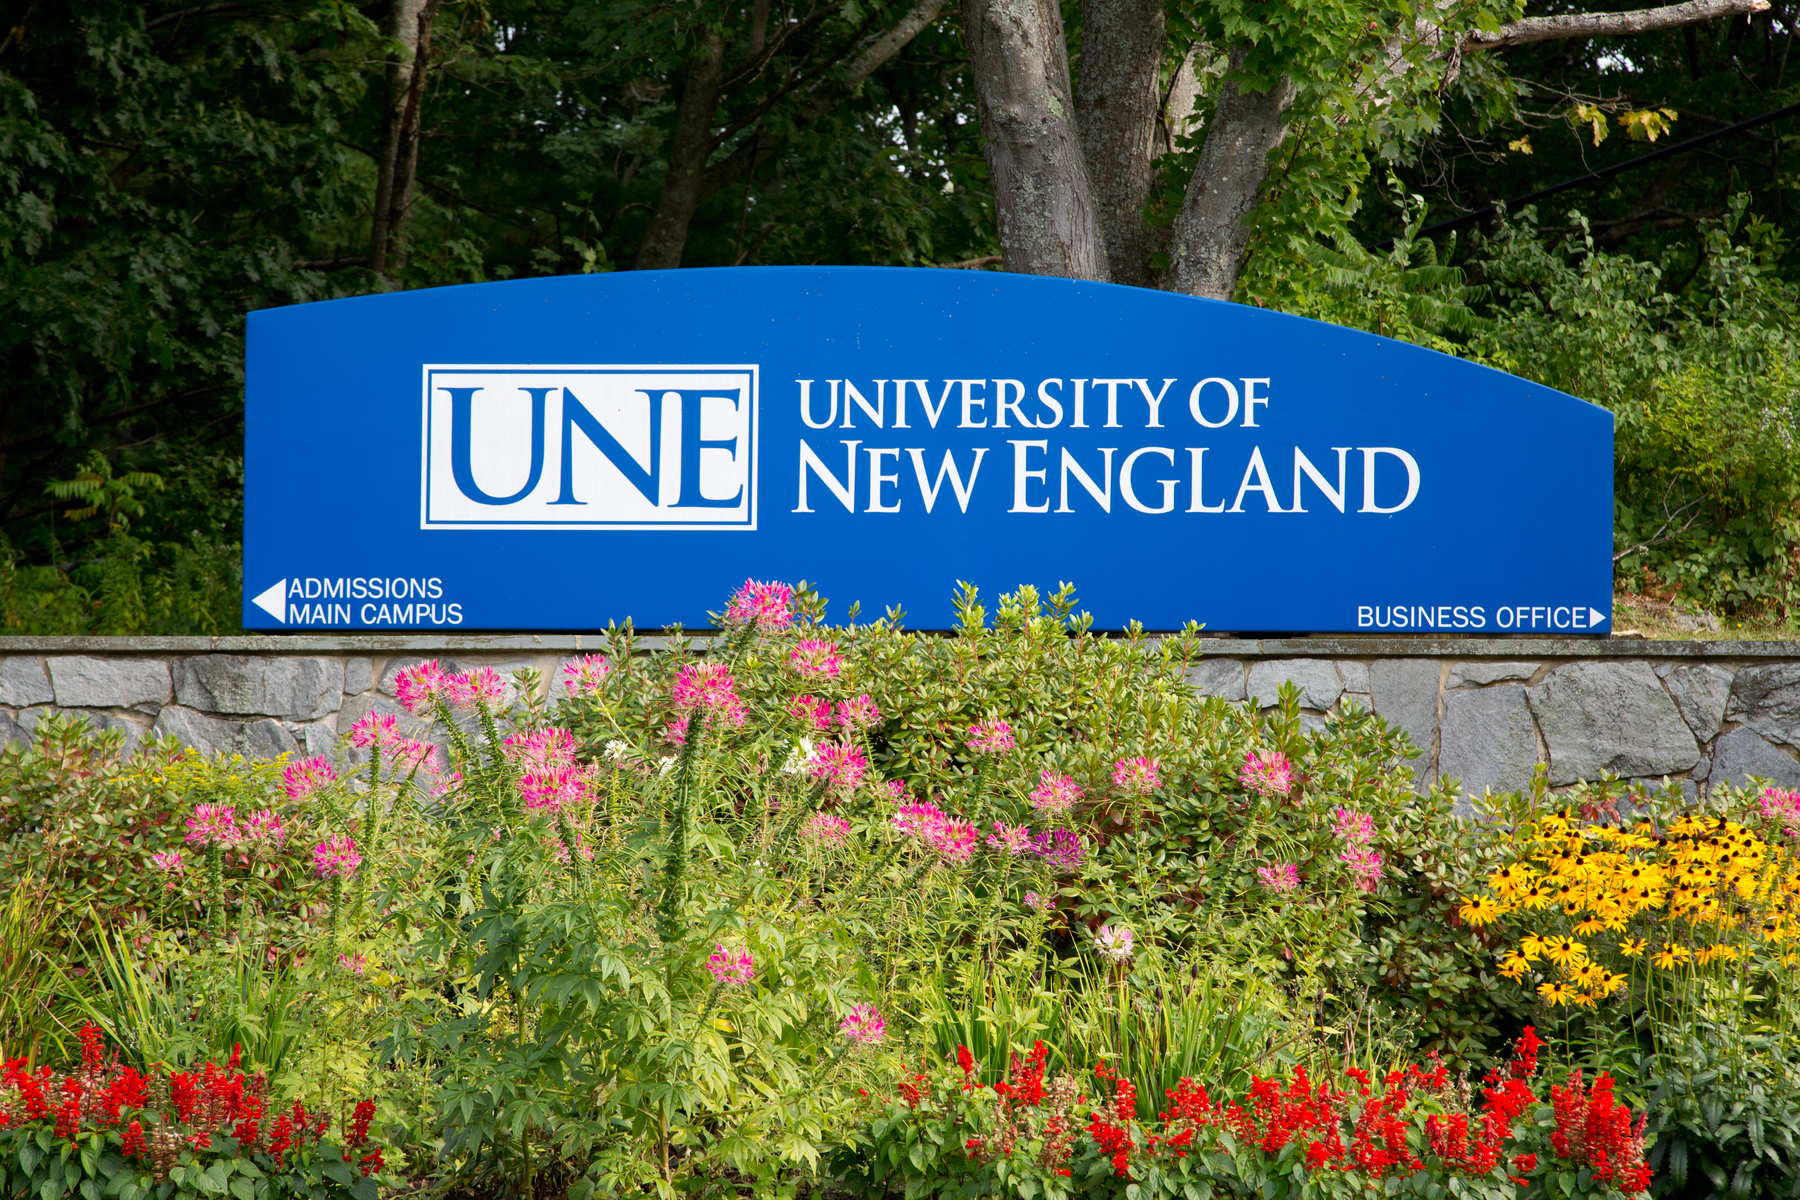 UNE Welcome Sign